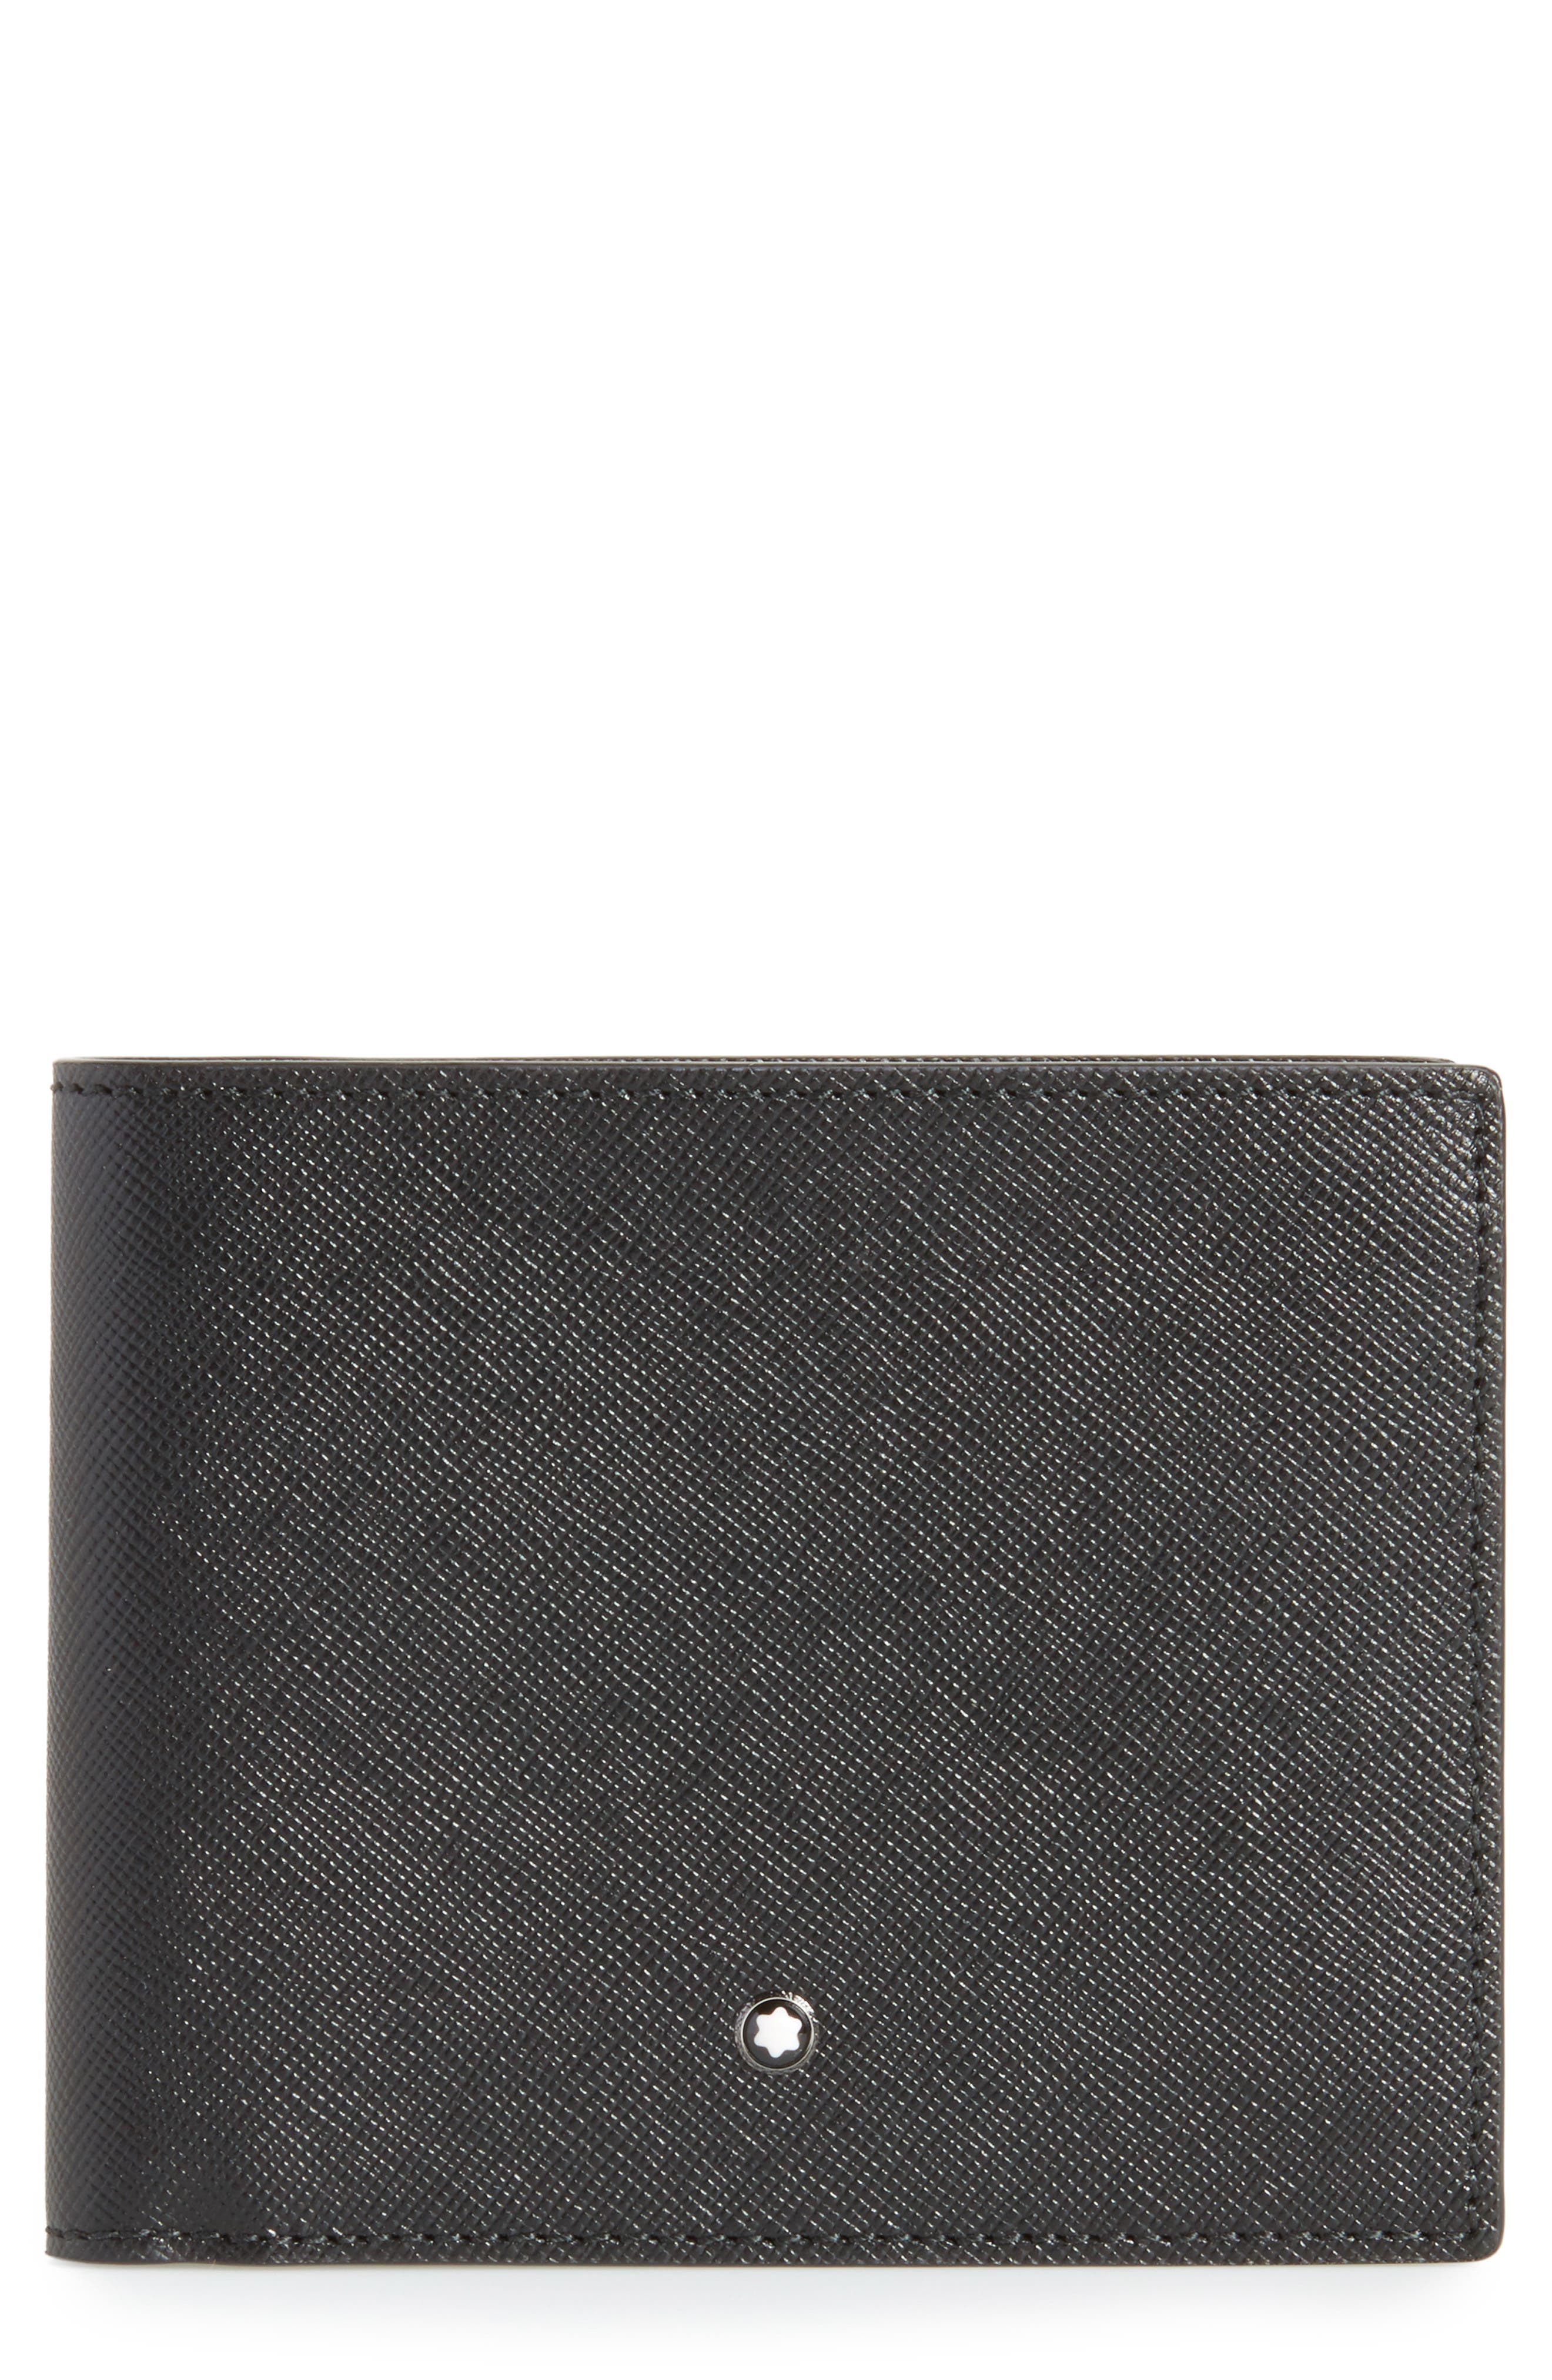 Alternate Image 1 Selected - Montblanc Sartorial Leather Wallet